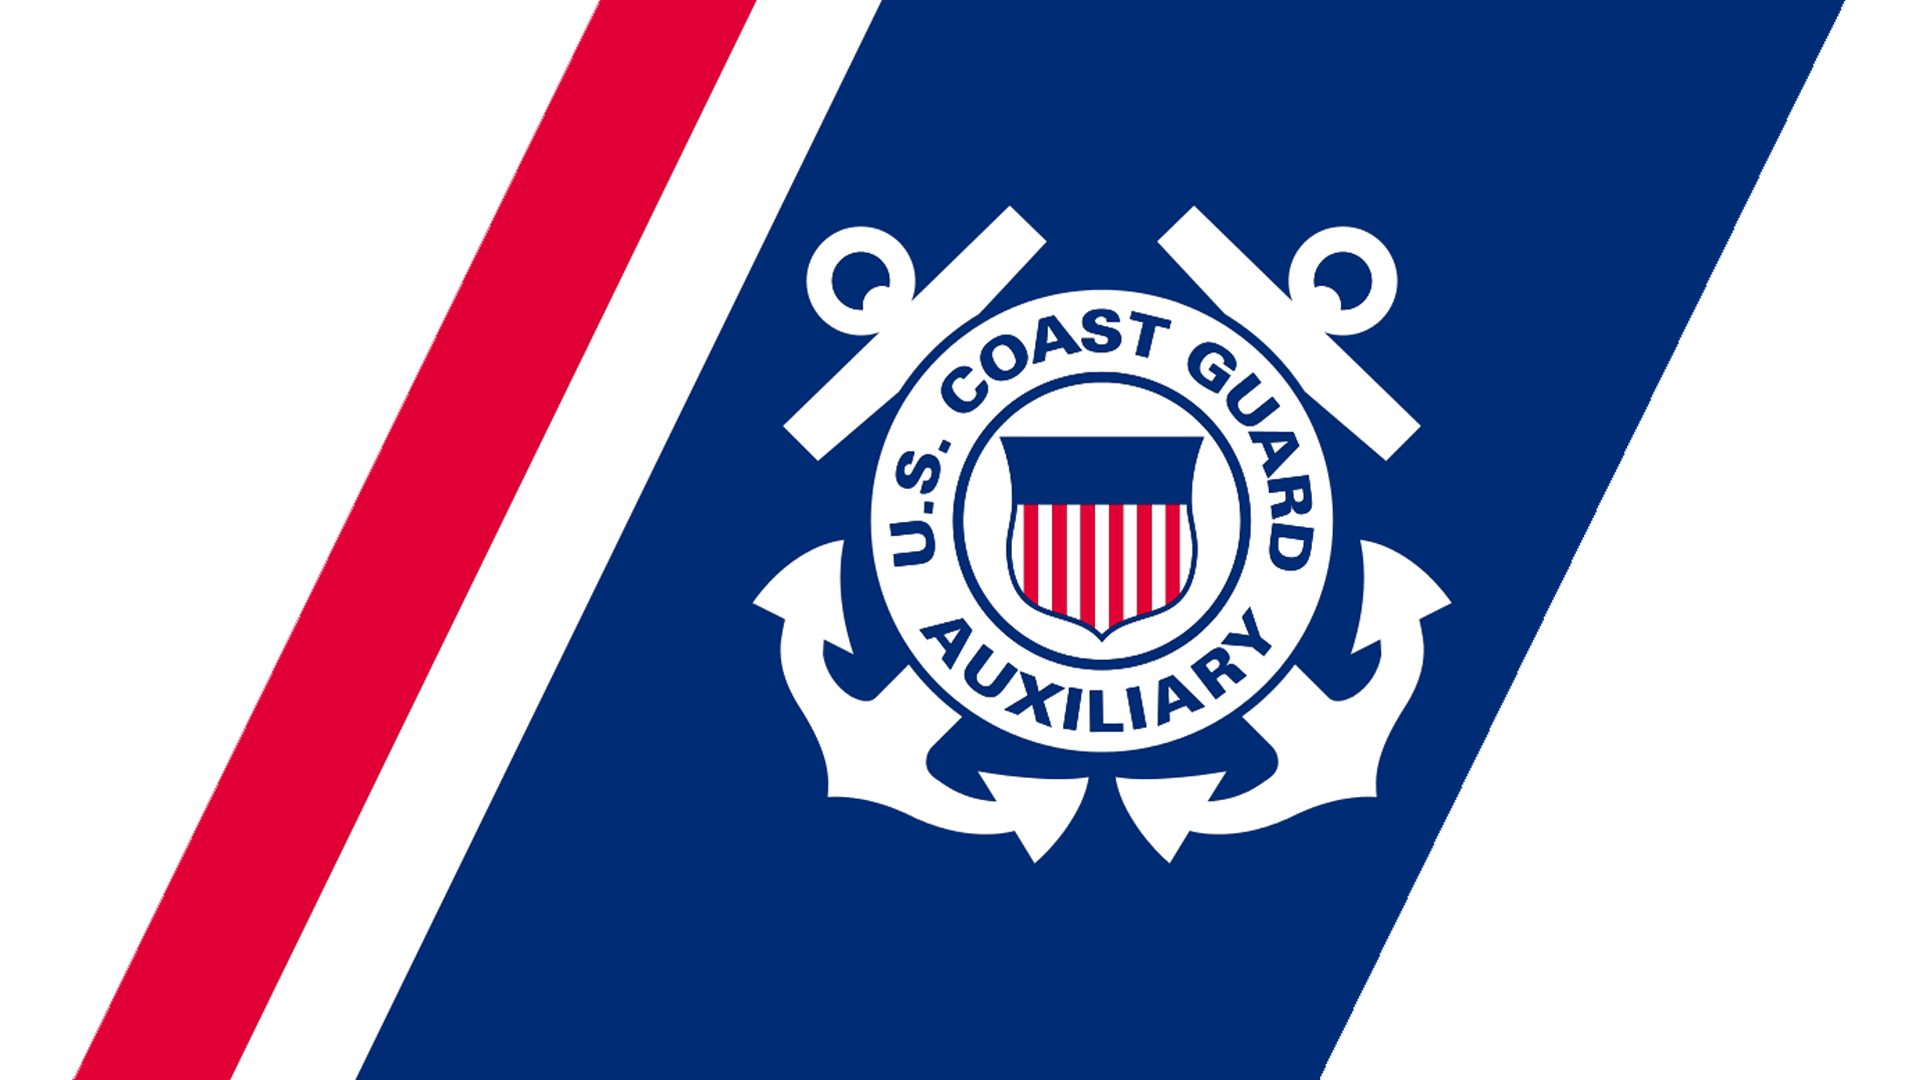 Coast Guard Auxiliary MON_1542057399638.png.jpg